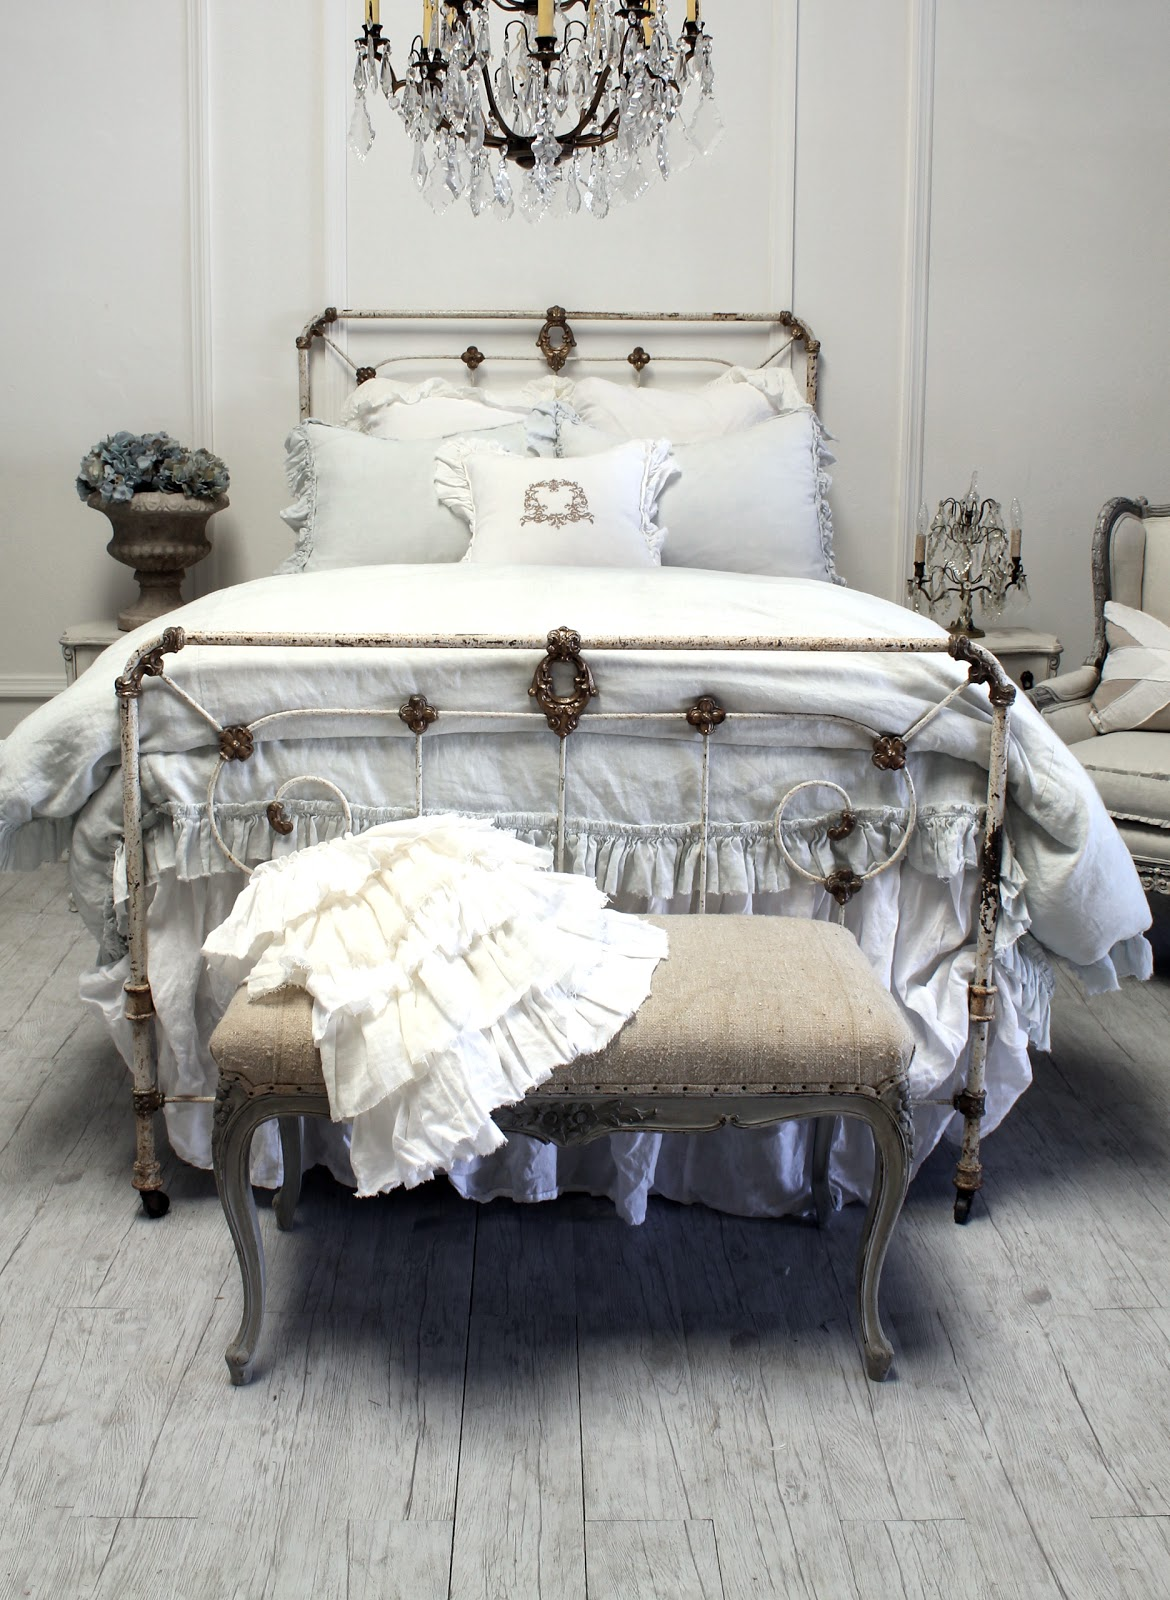 Full Bloom Cottage: Linen Ruffle Bedding Soft and Organic....